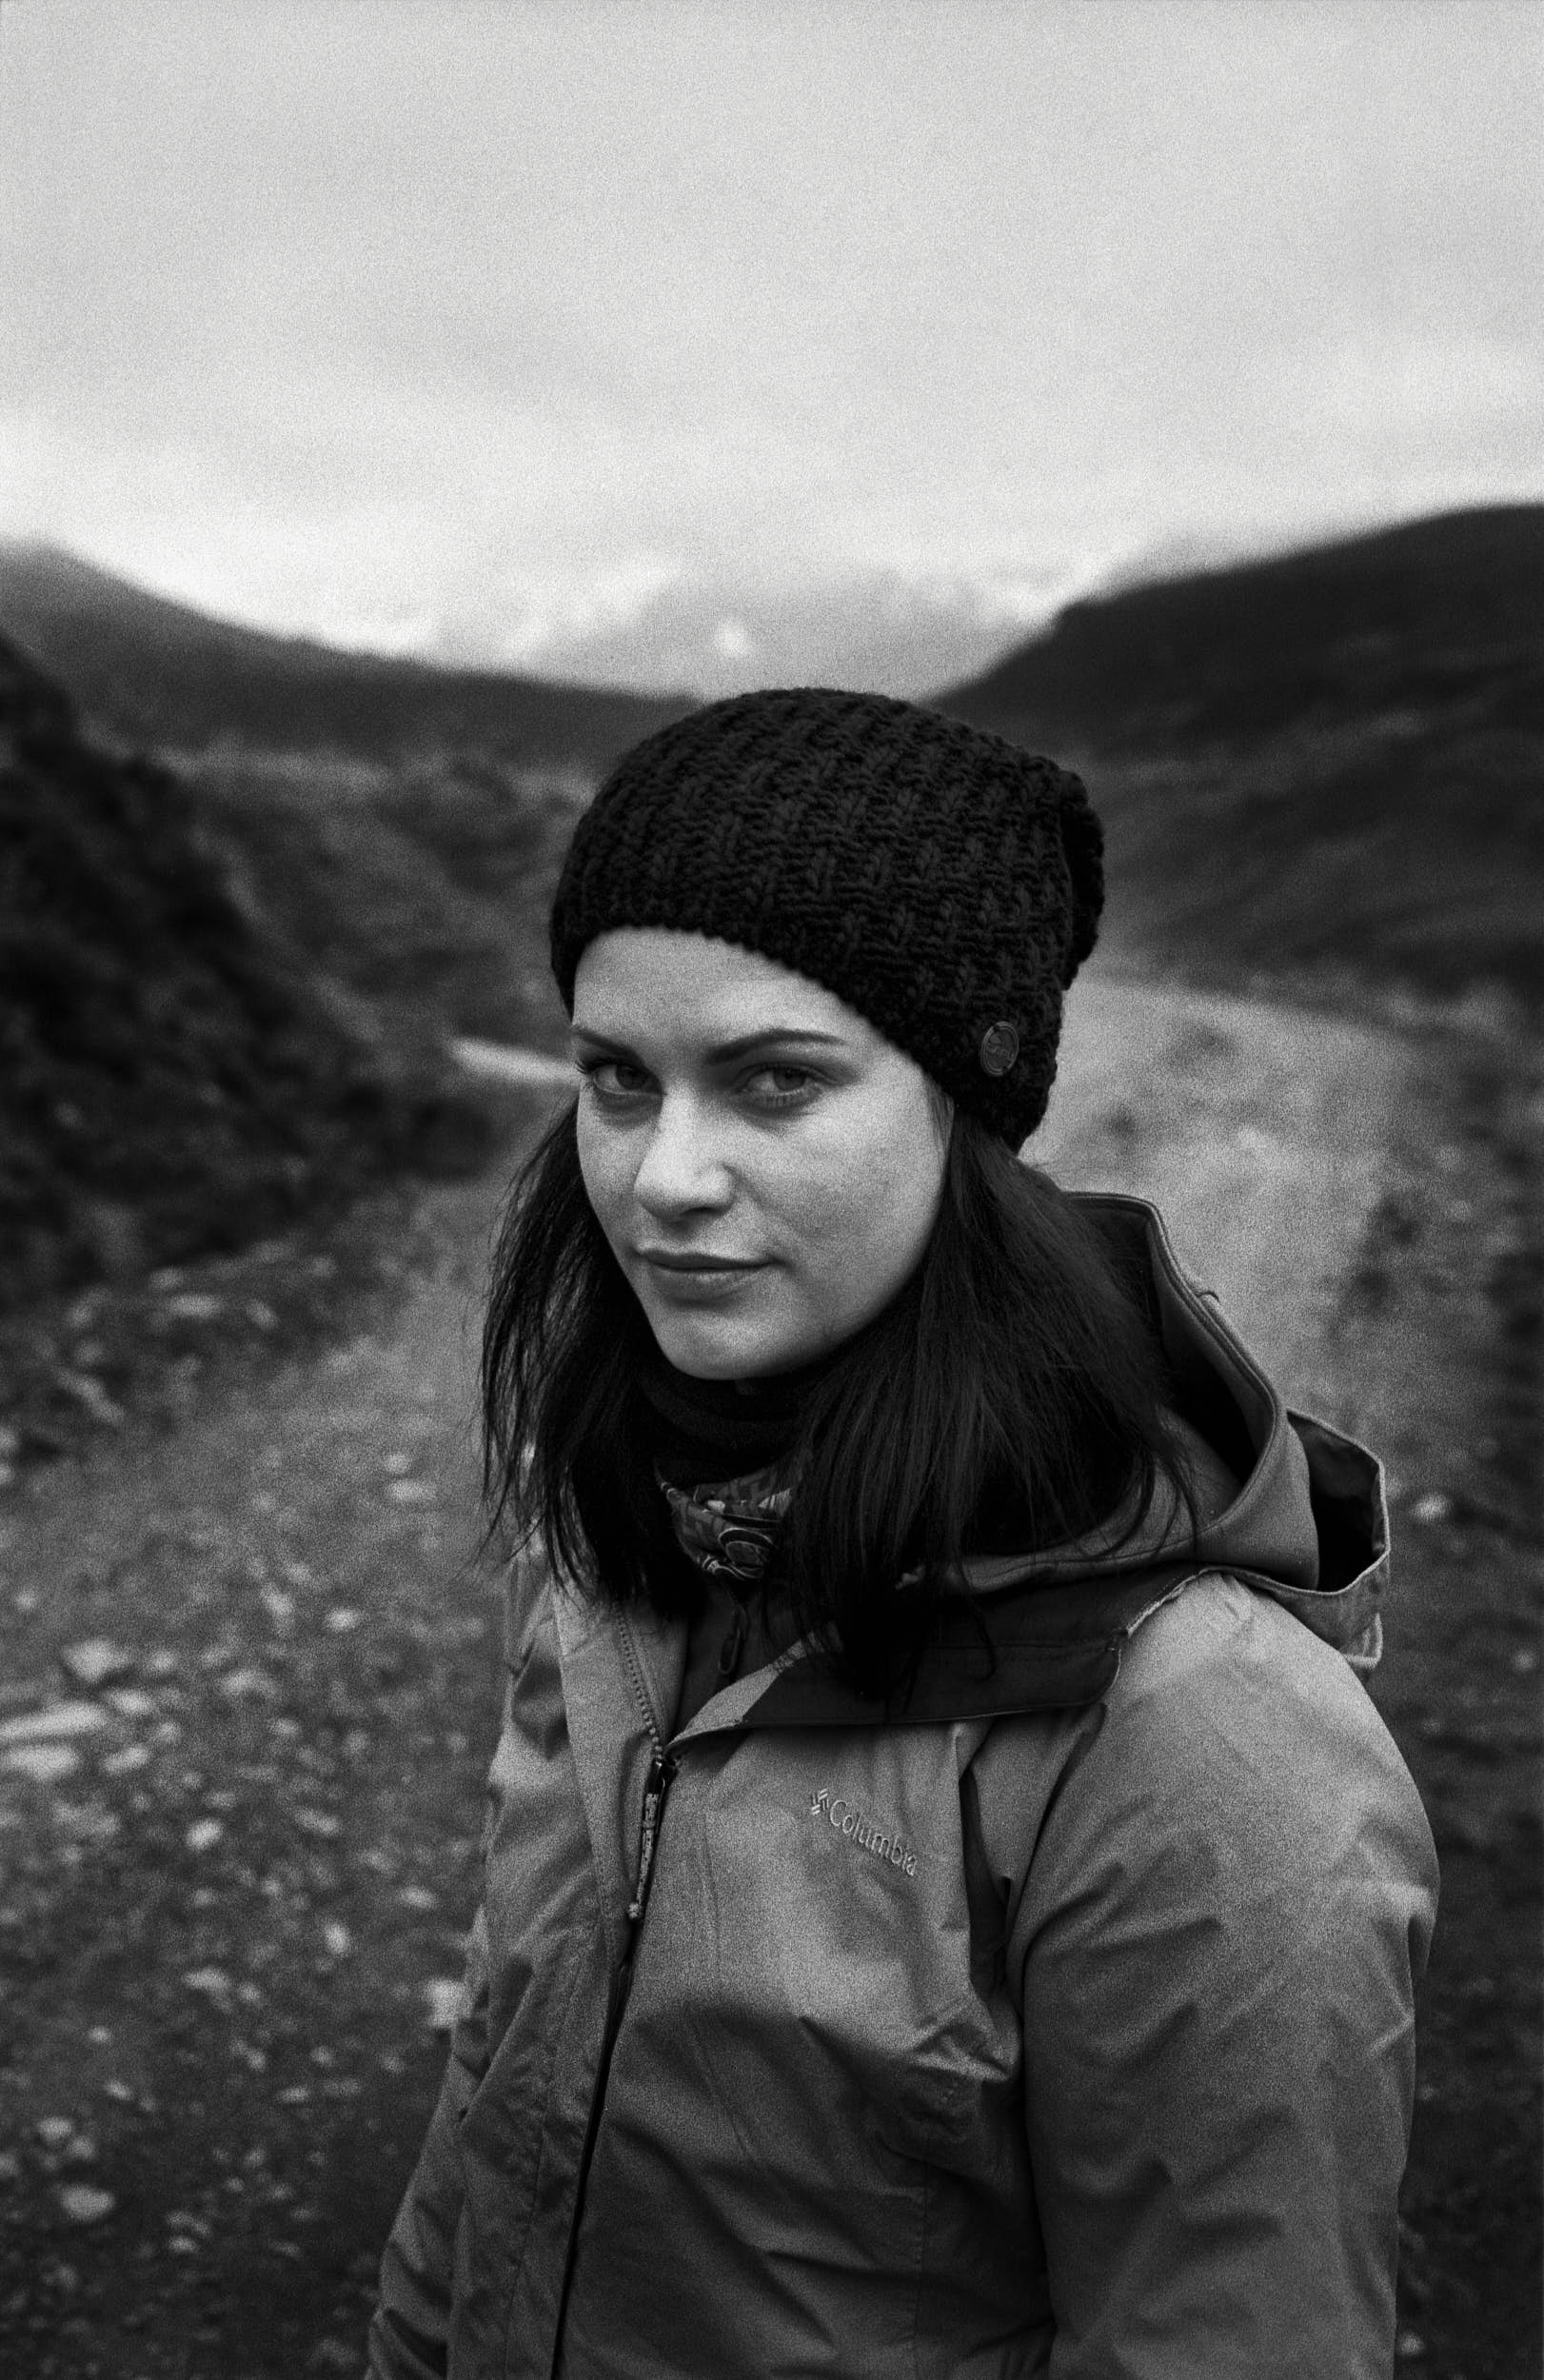 Woman on a mountain path dressed in outdoor apparel in a classic black and white film portrait.